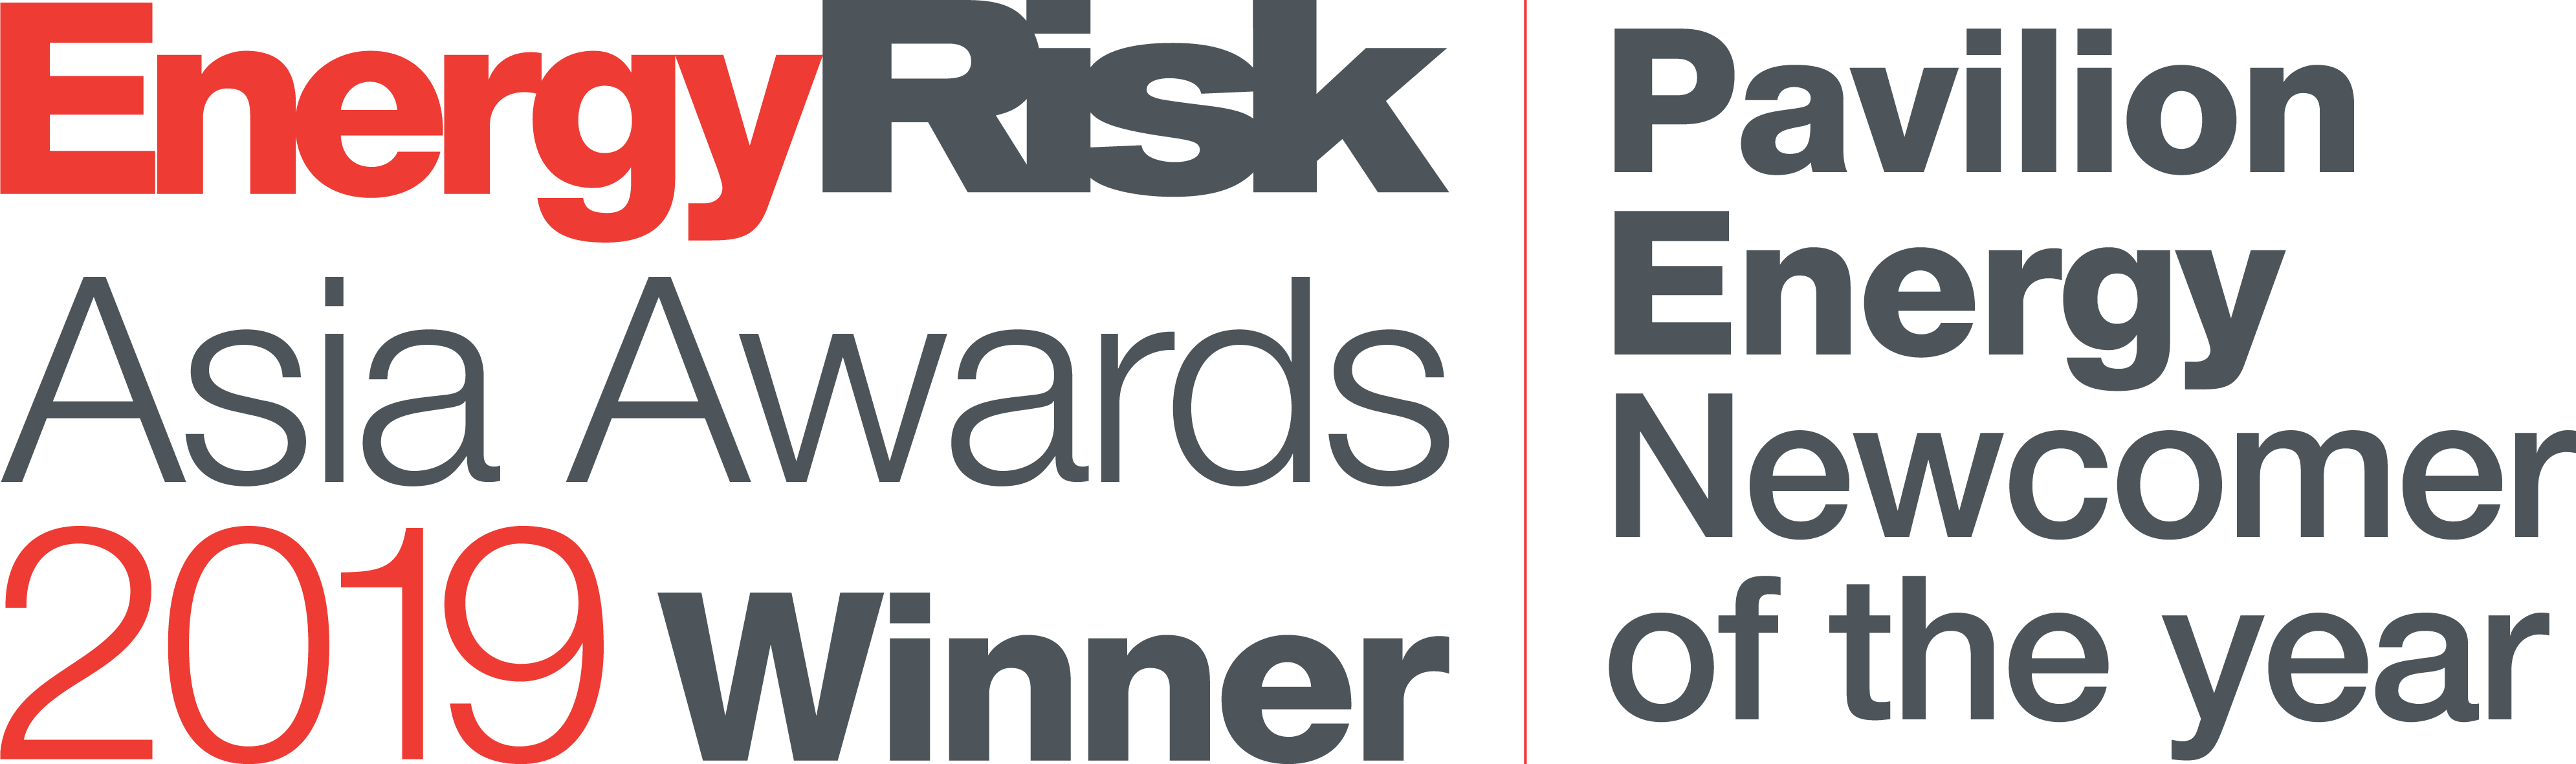 Energy Risk Asia Awards 2019